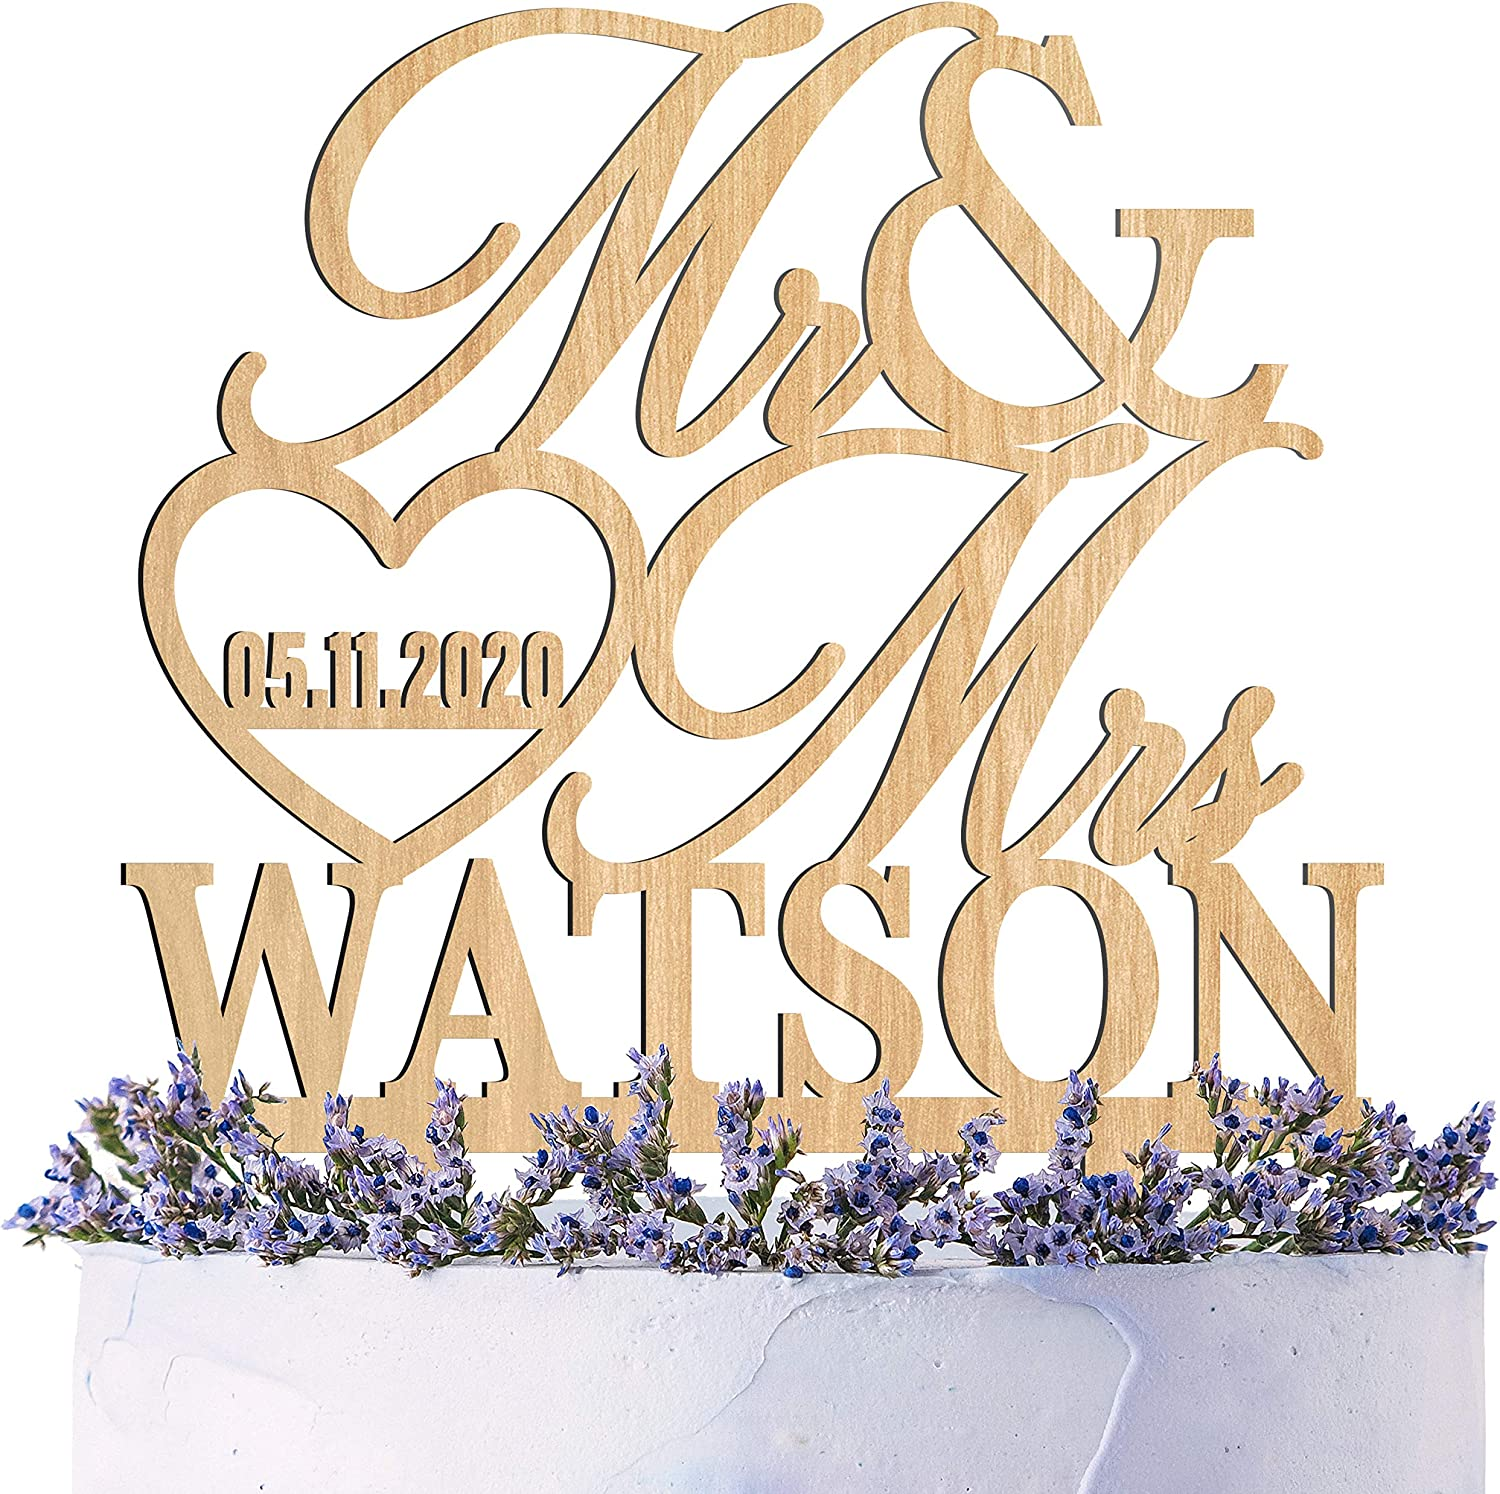 Wedding Cake Topper Personalized Mr. Mrs. New Rapid rise arrival Custom w